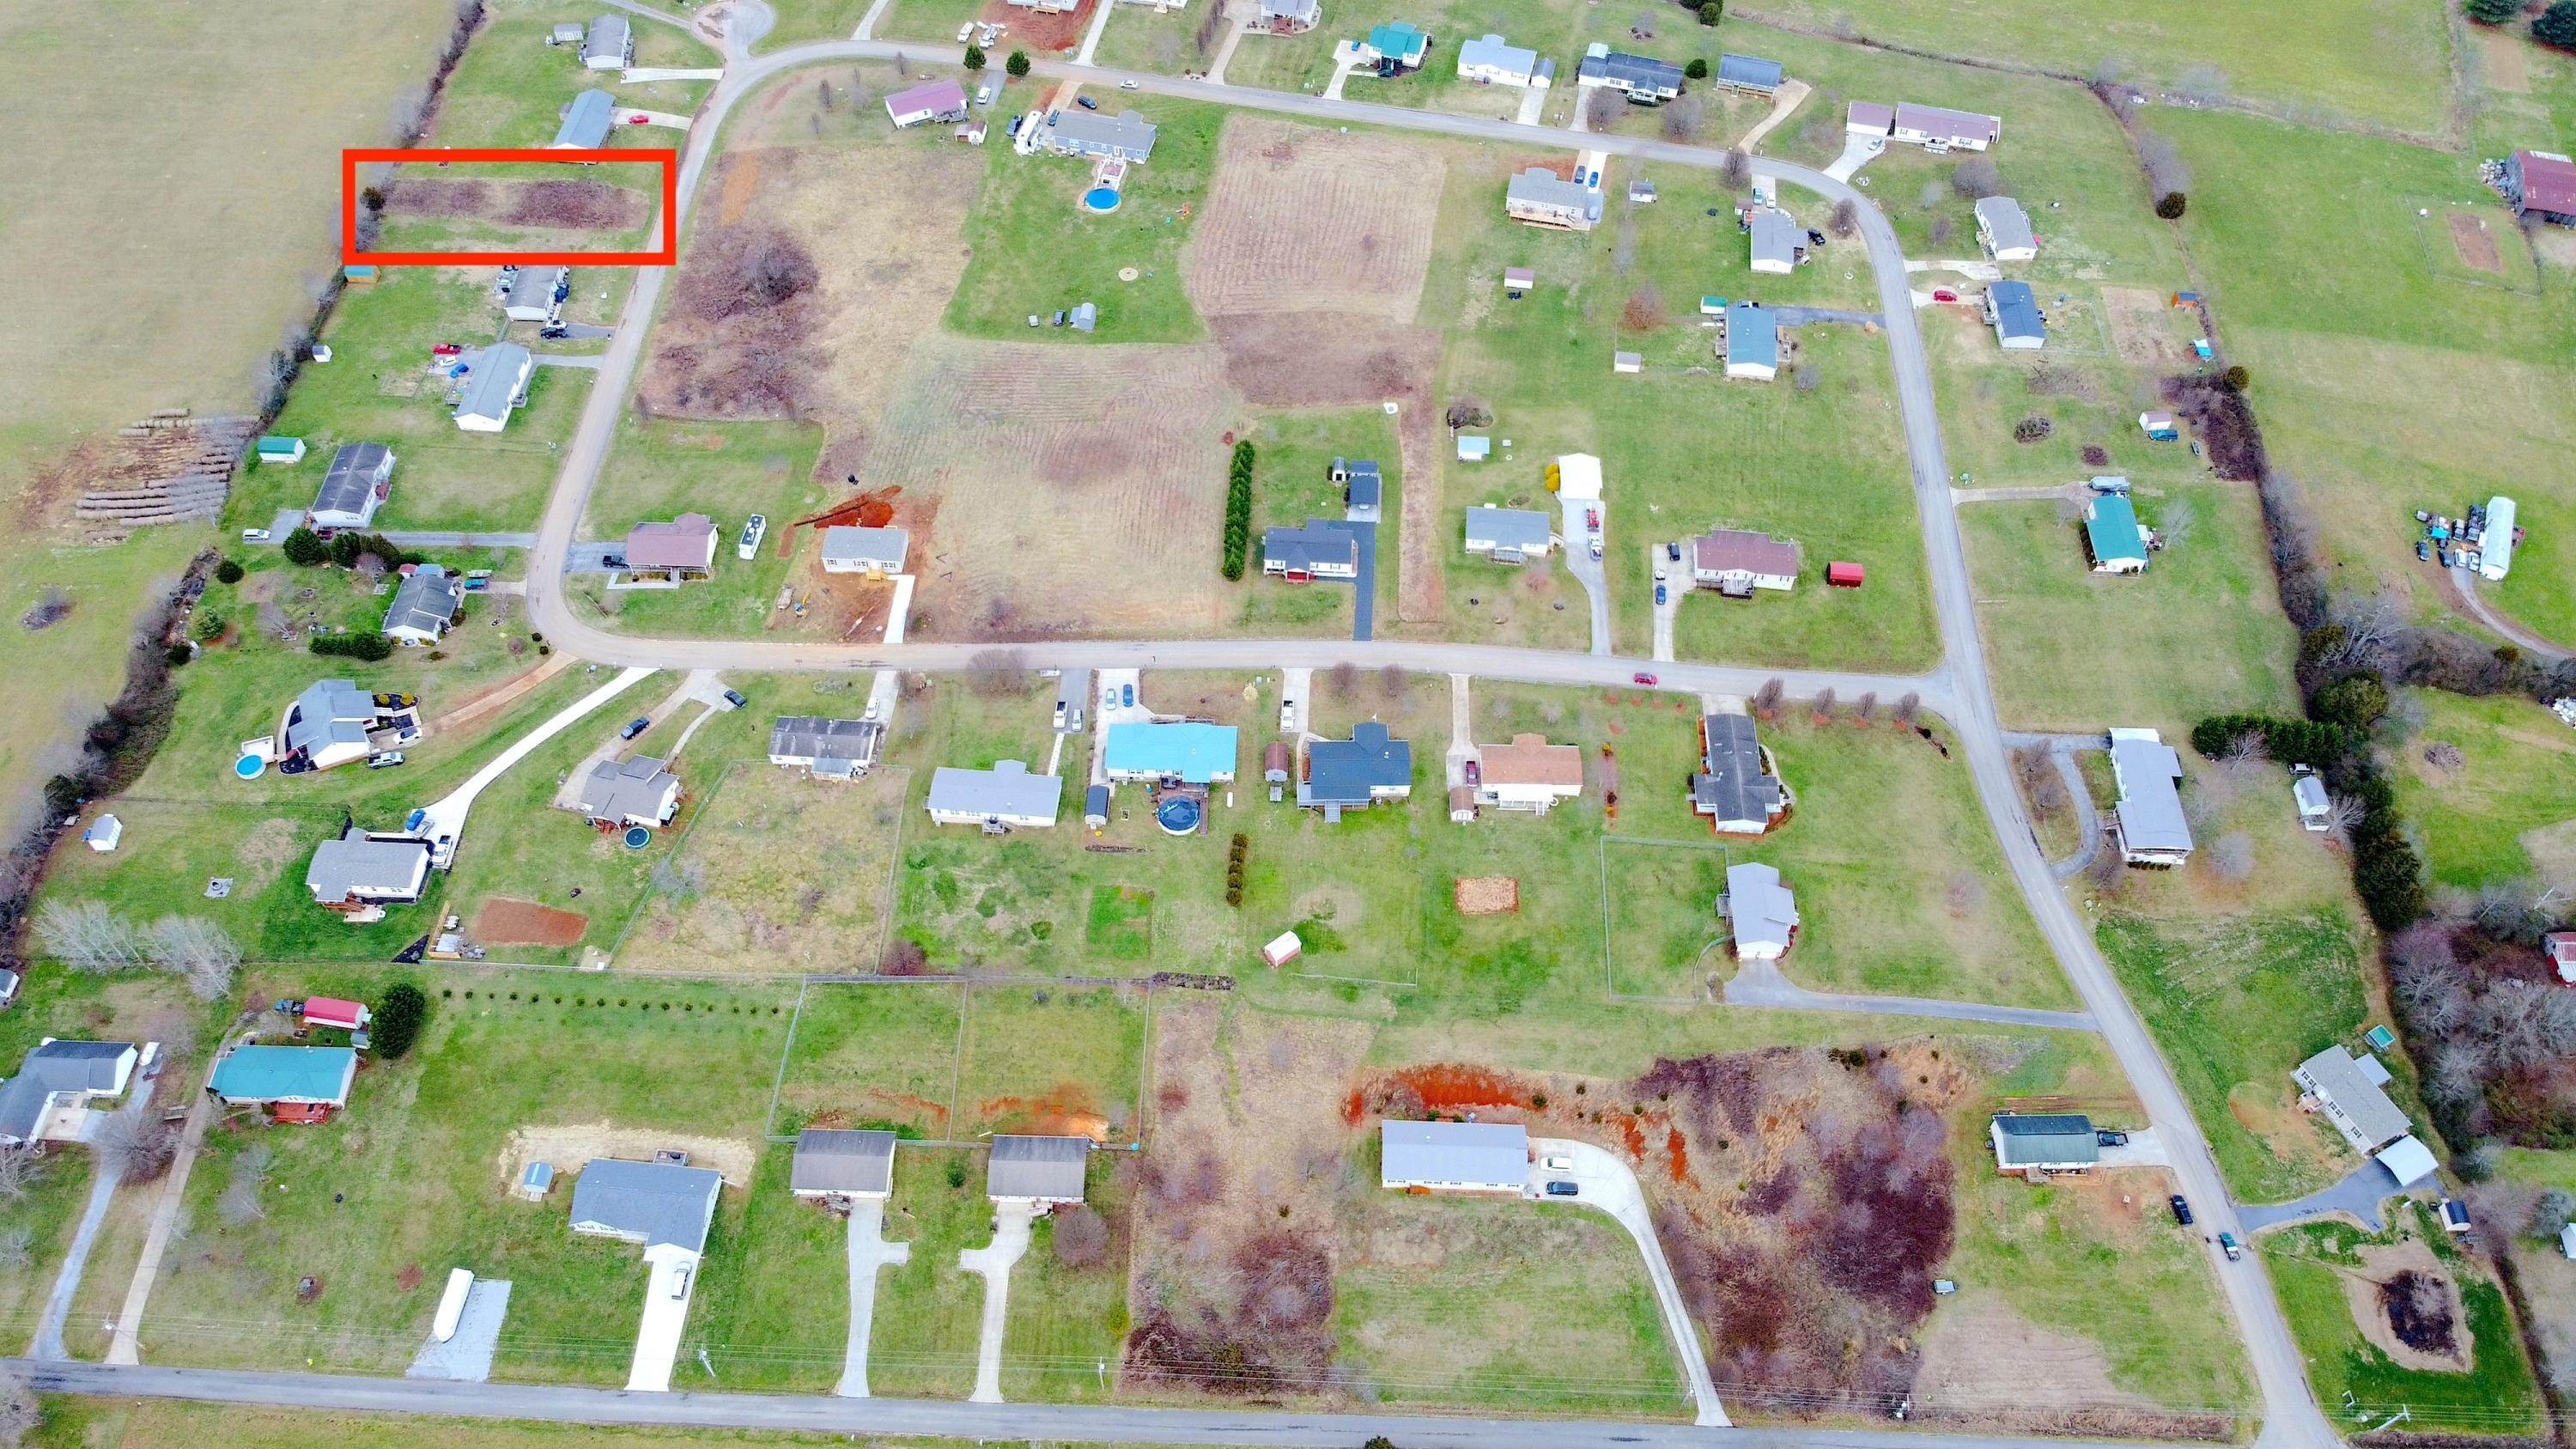 Terreno por un Venta en Ebenezer Loop Lot 26 Chuckey, Tennessee 37641 Estados Unidos